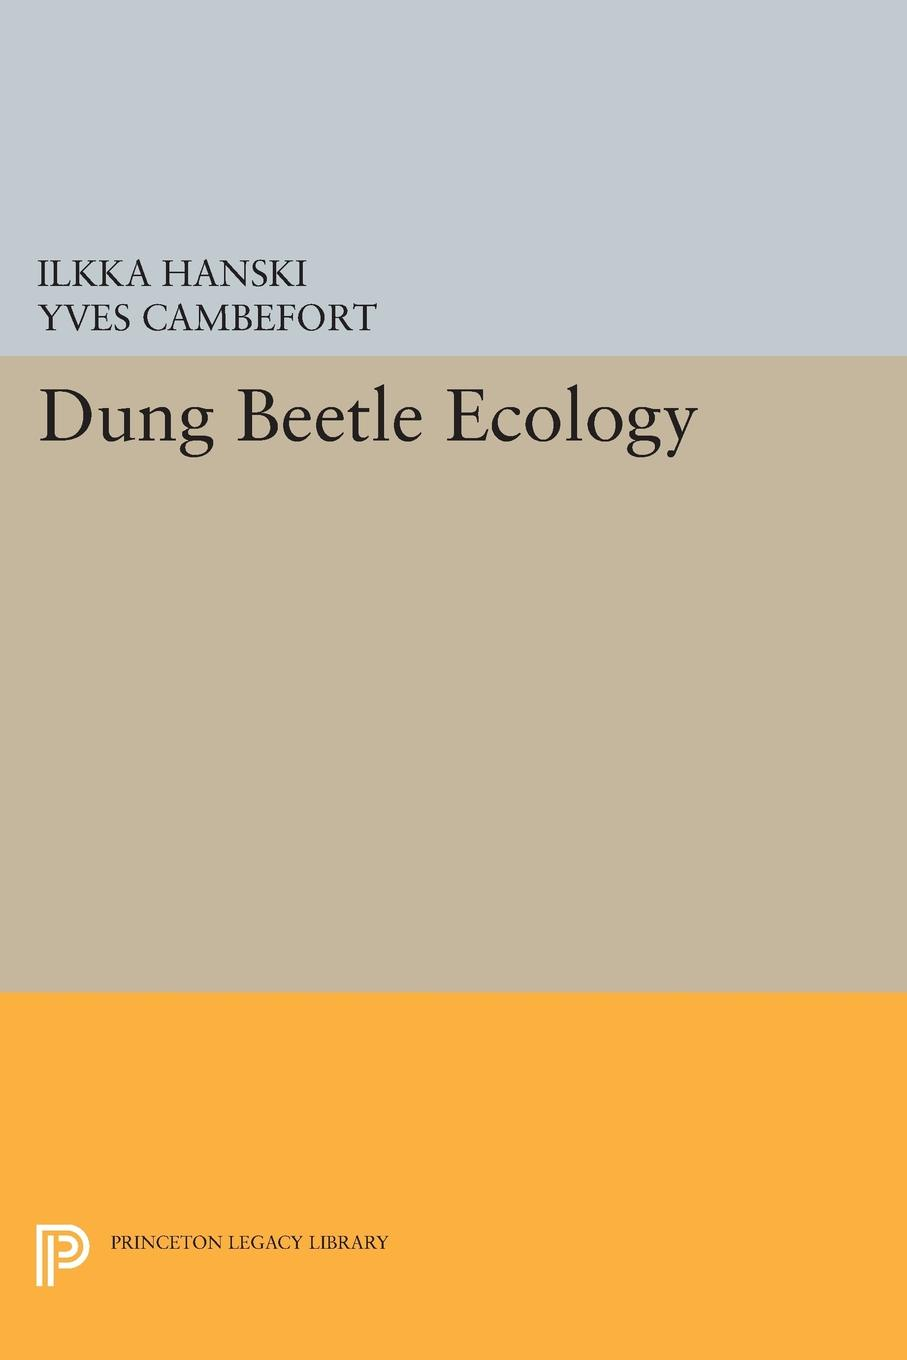 лучшая цена Dung Beetle Ecology